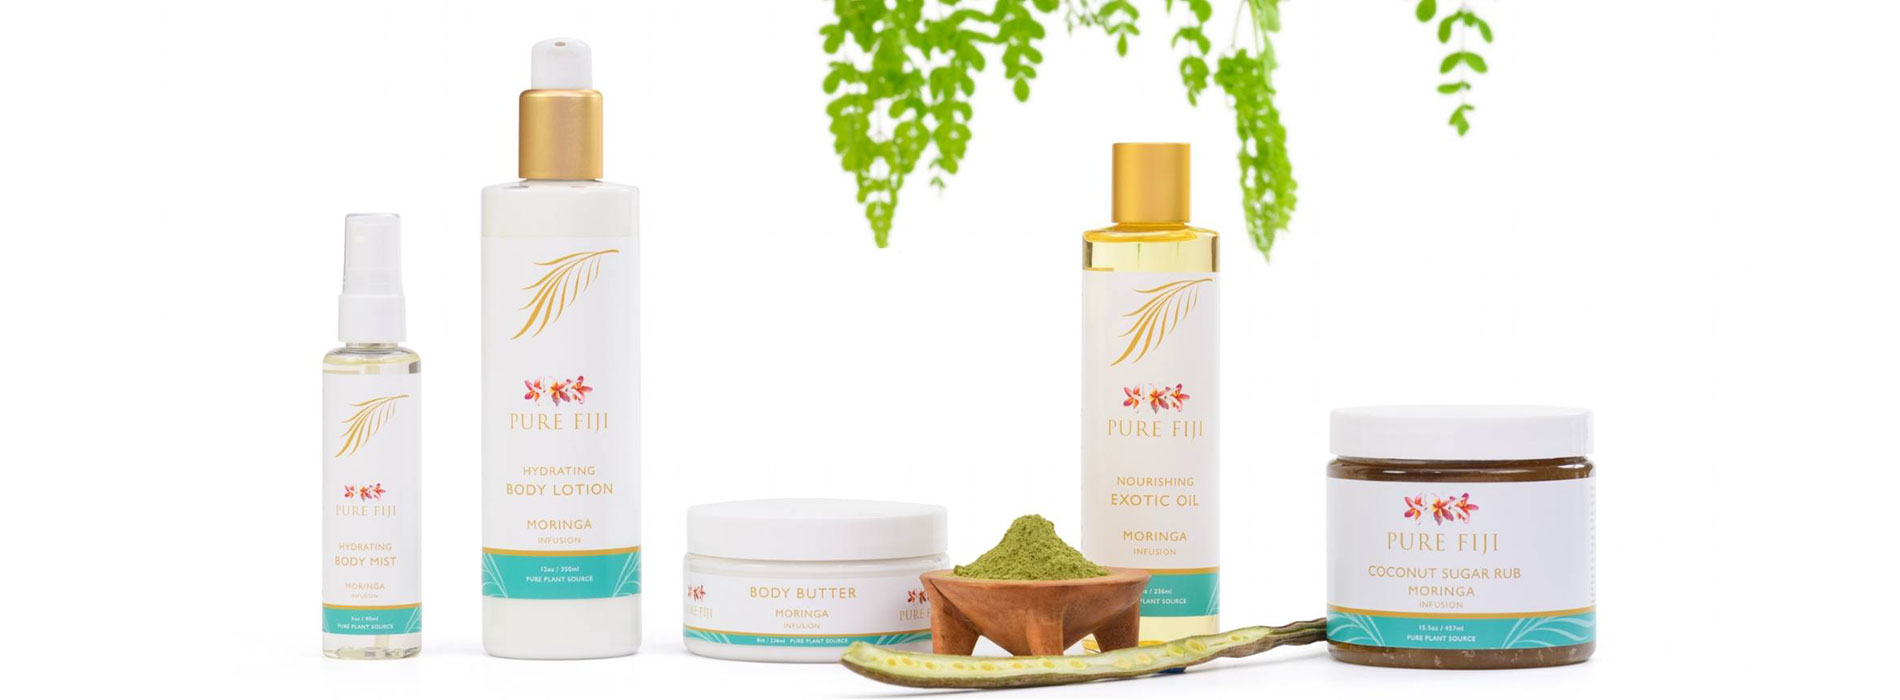 win pure fiji products